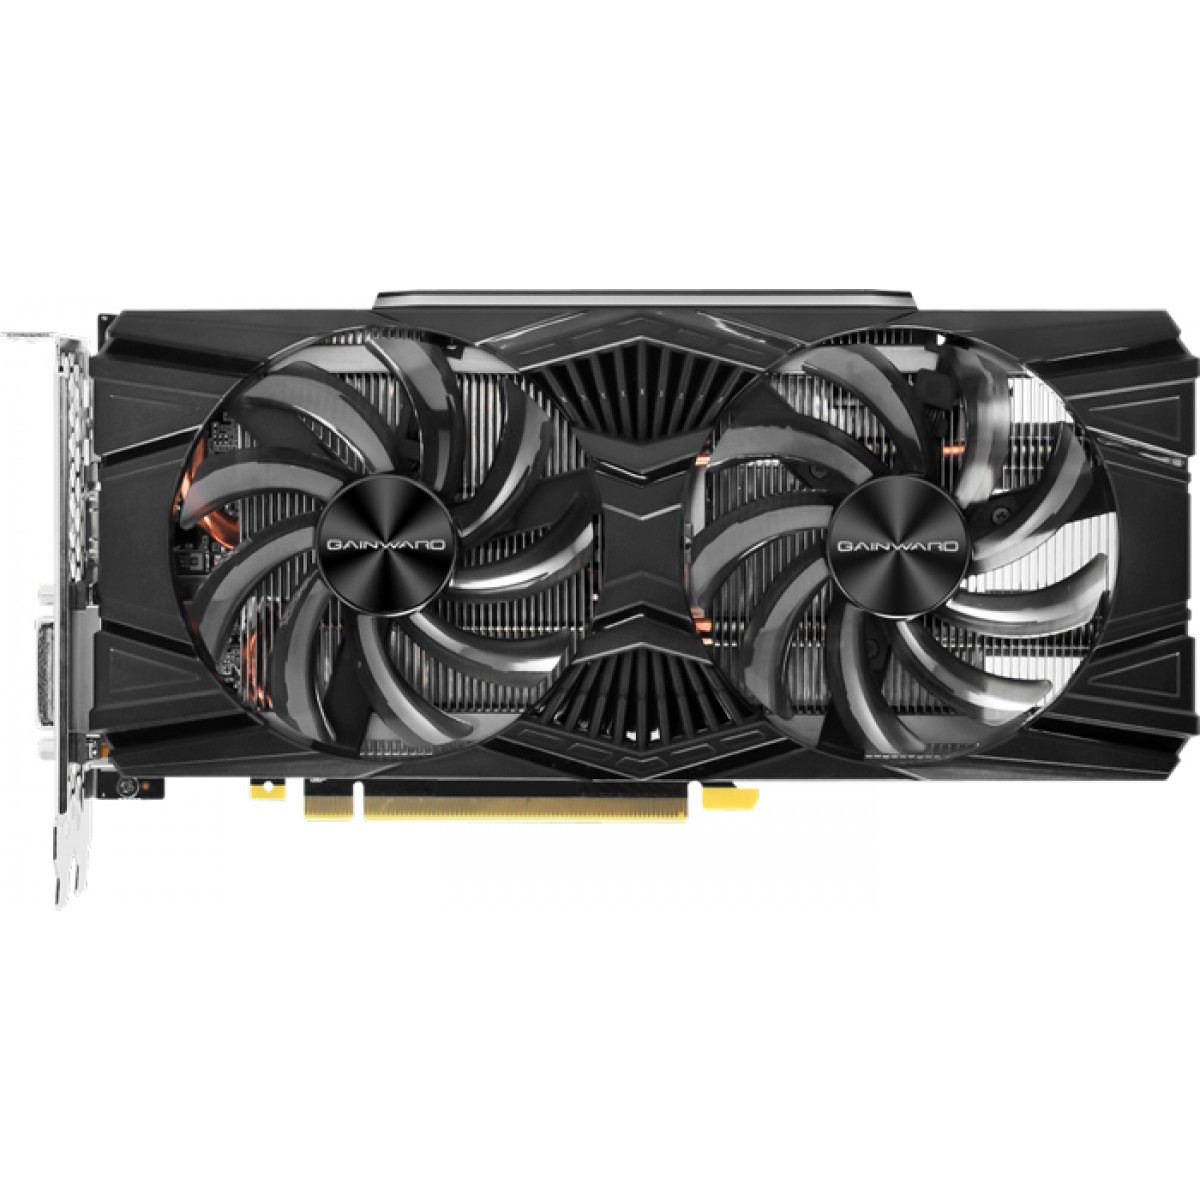 Placa De Vídeo Gainward Geforce RTX 2070 Dual, 8GB GDDR6, 256Bit, NE62070018P2-1160X